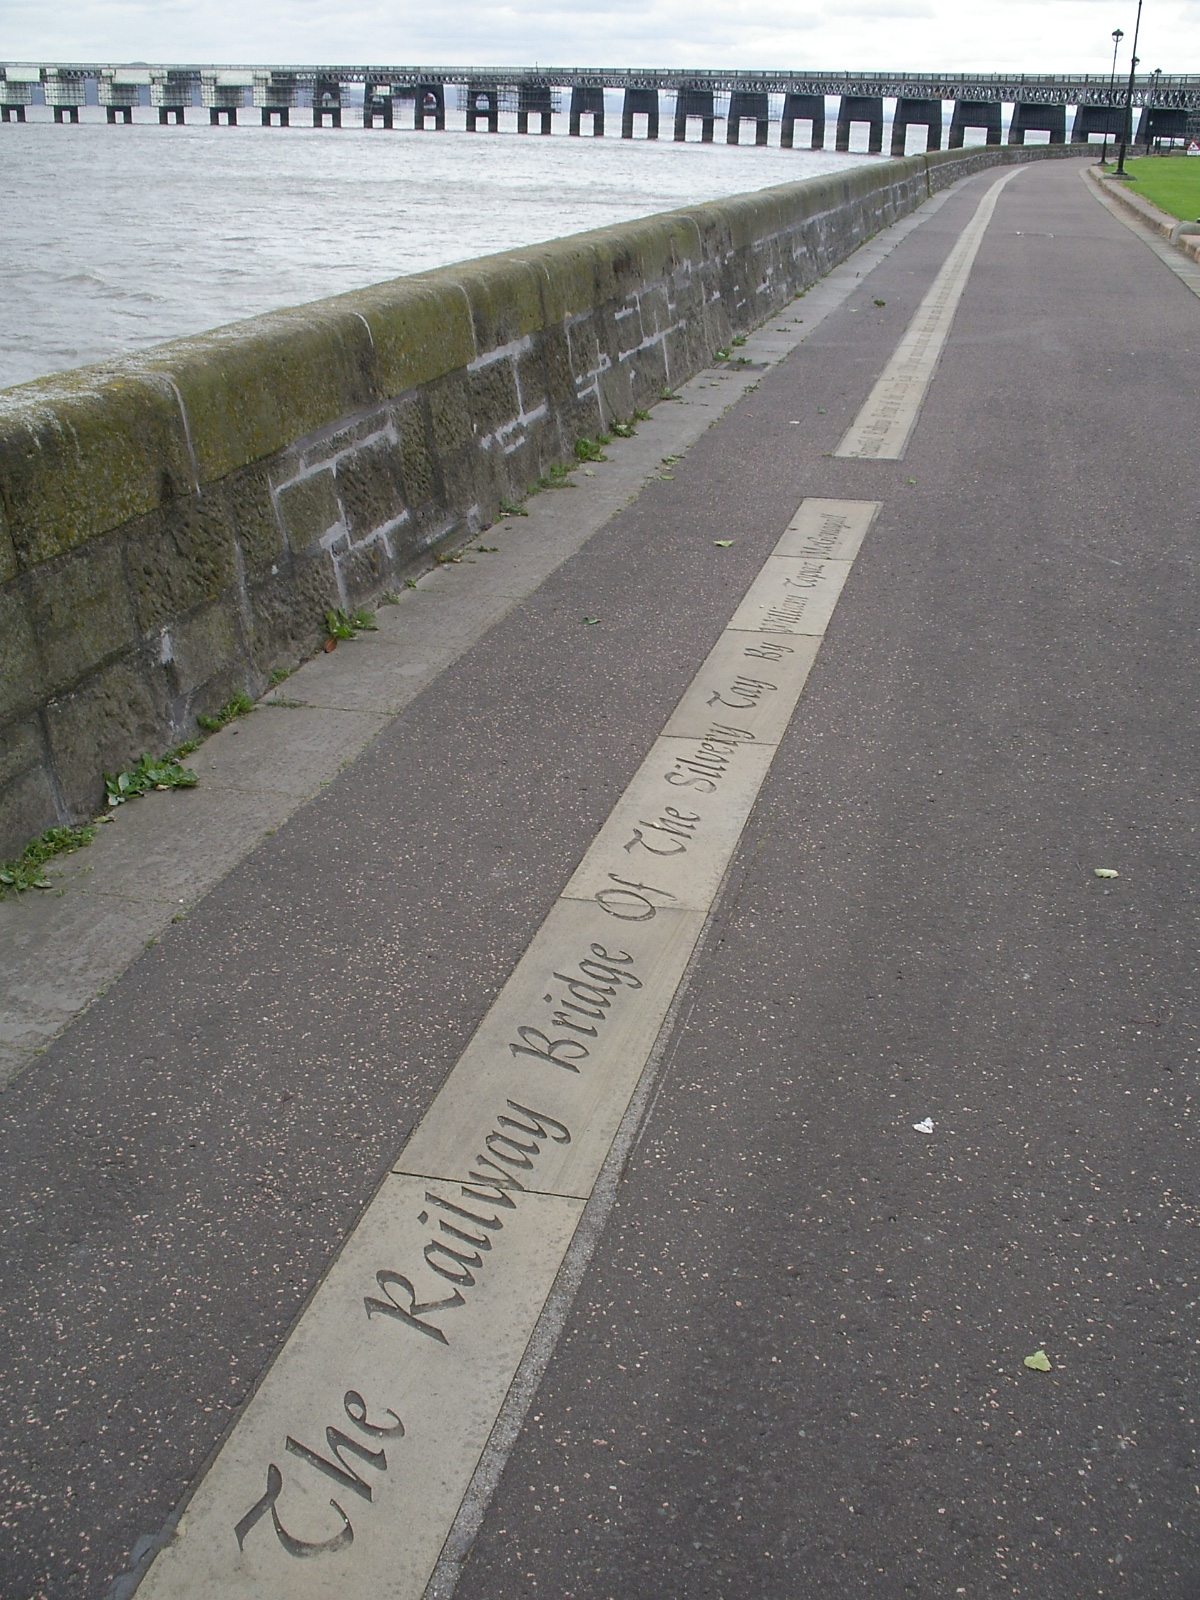 McGonagall Walk along with river Tay